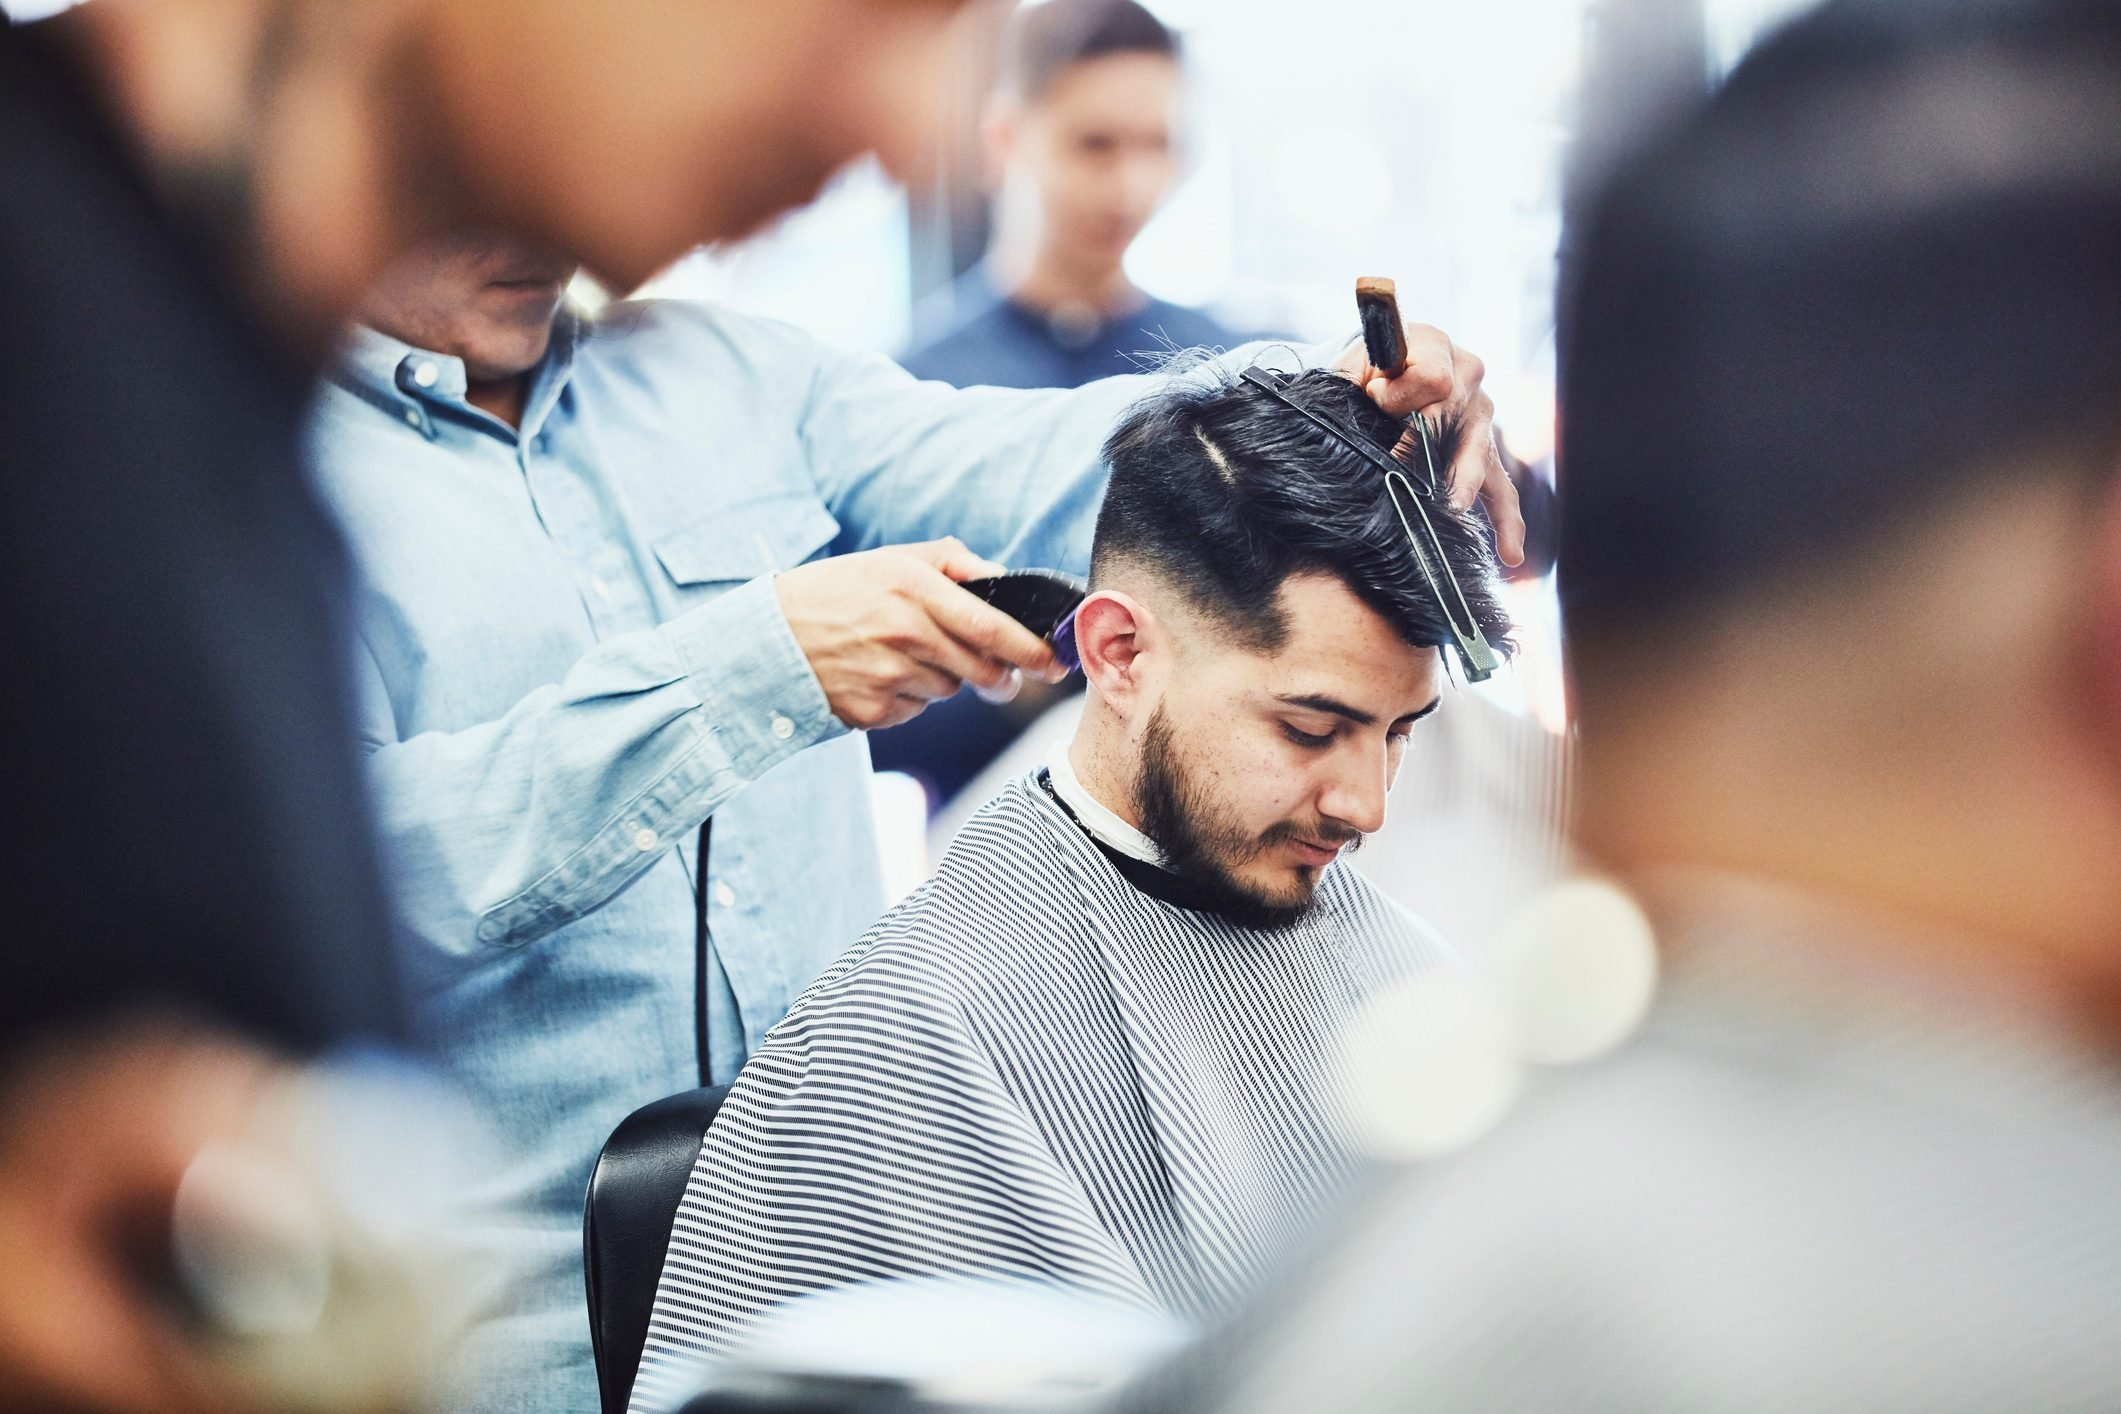 Man having hair cut in barber shop